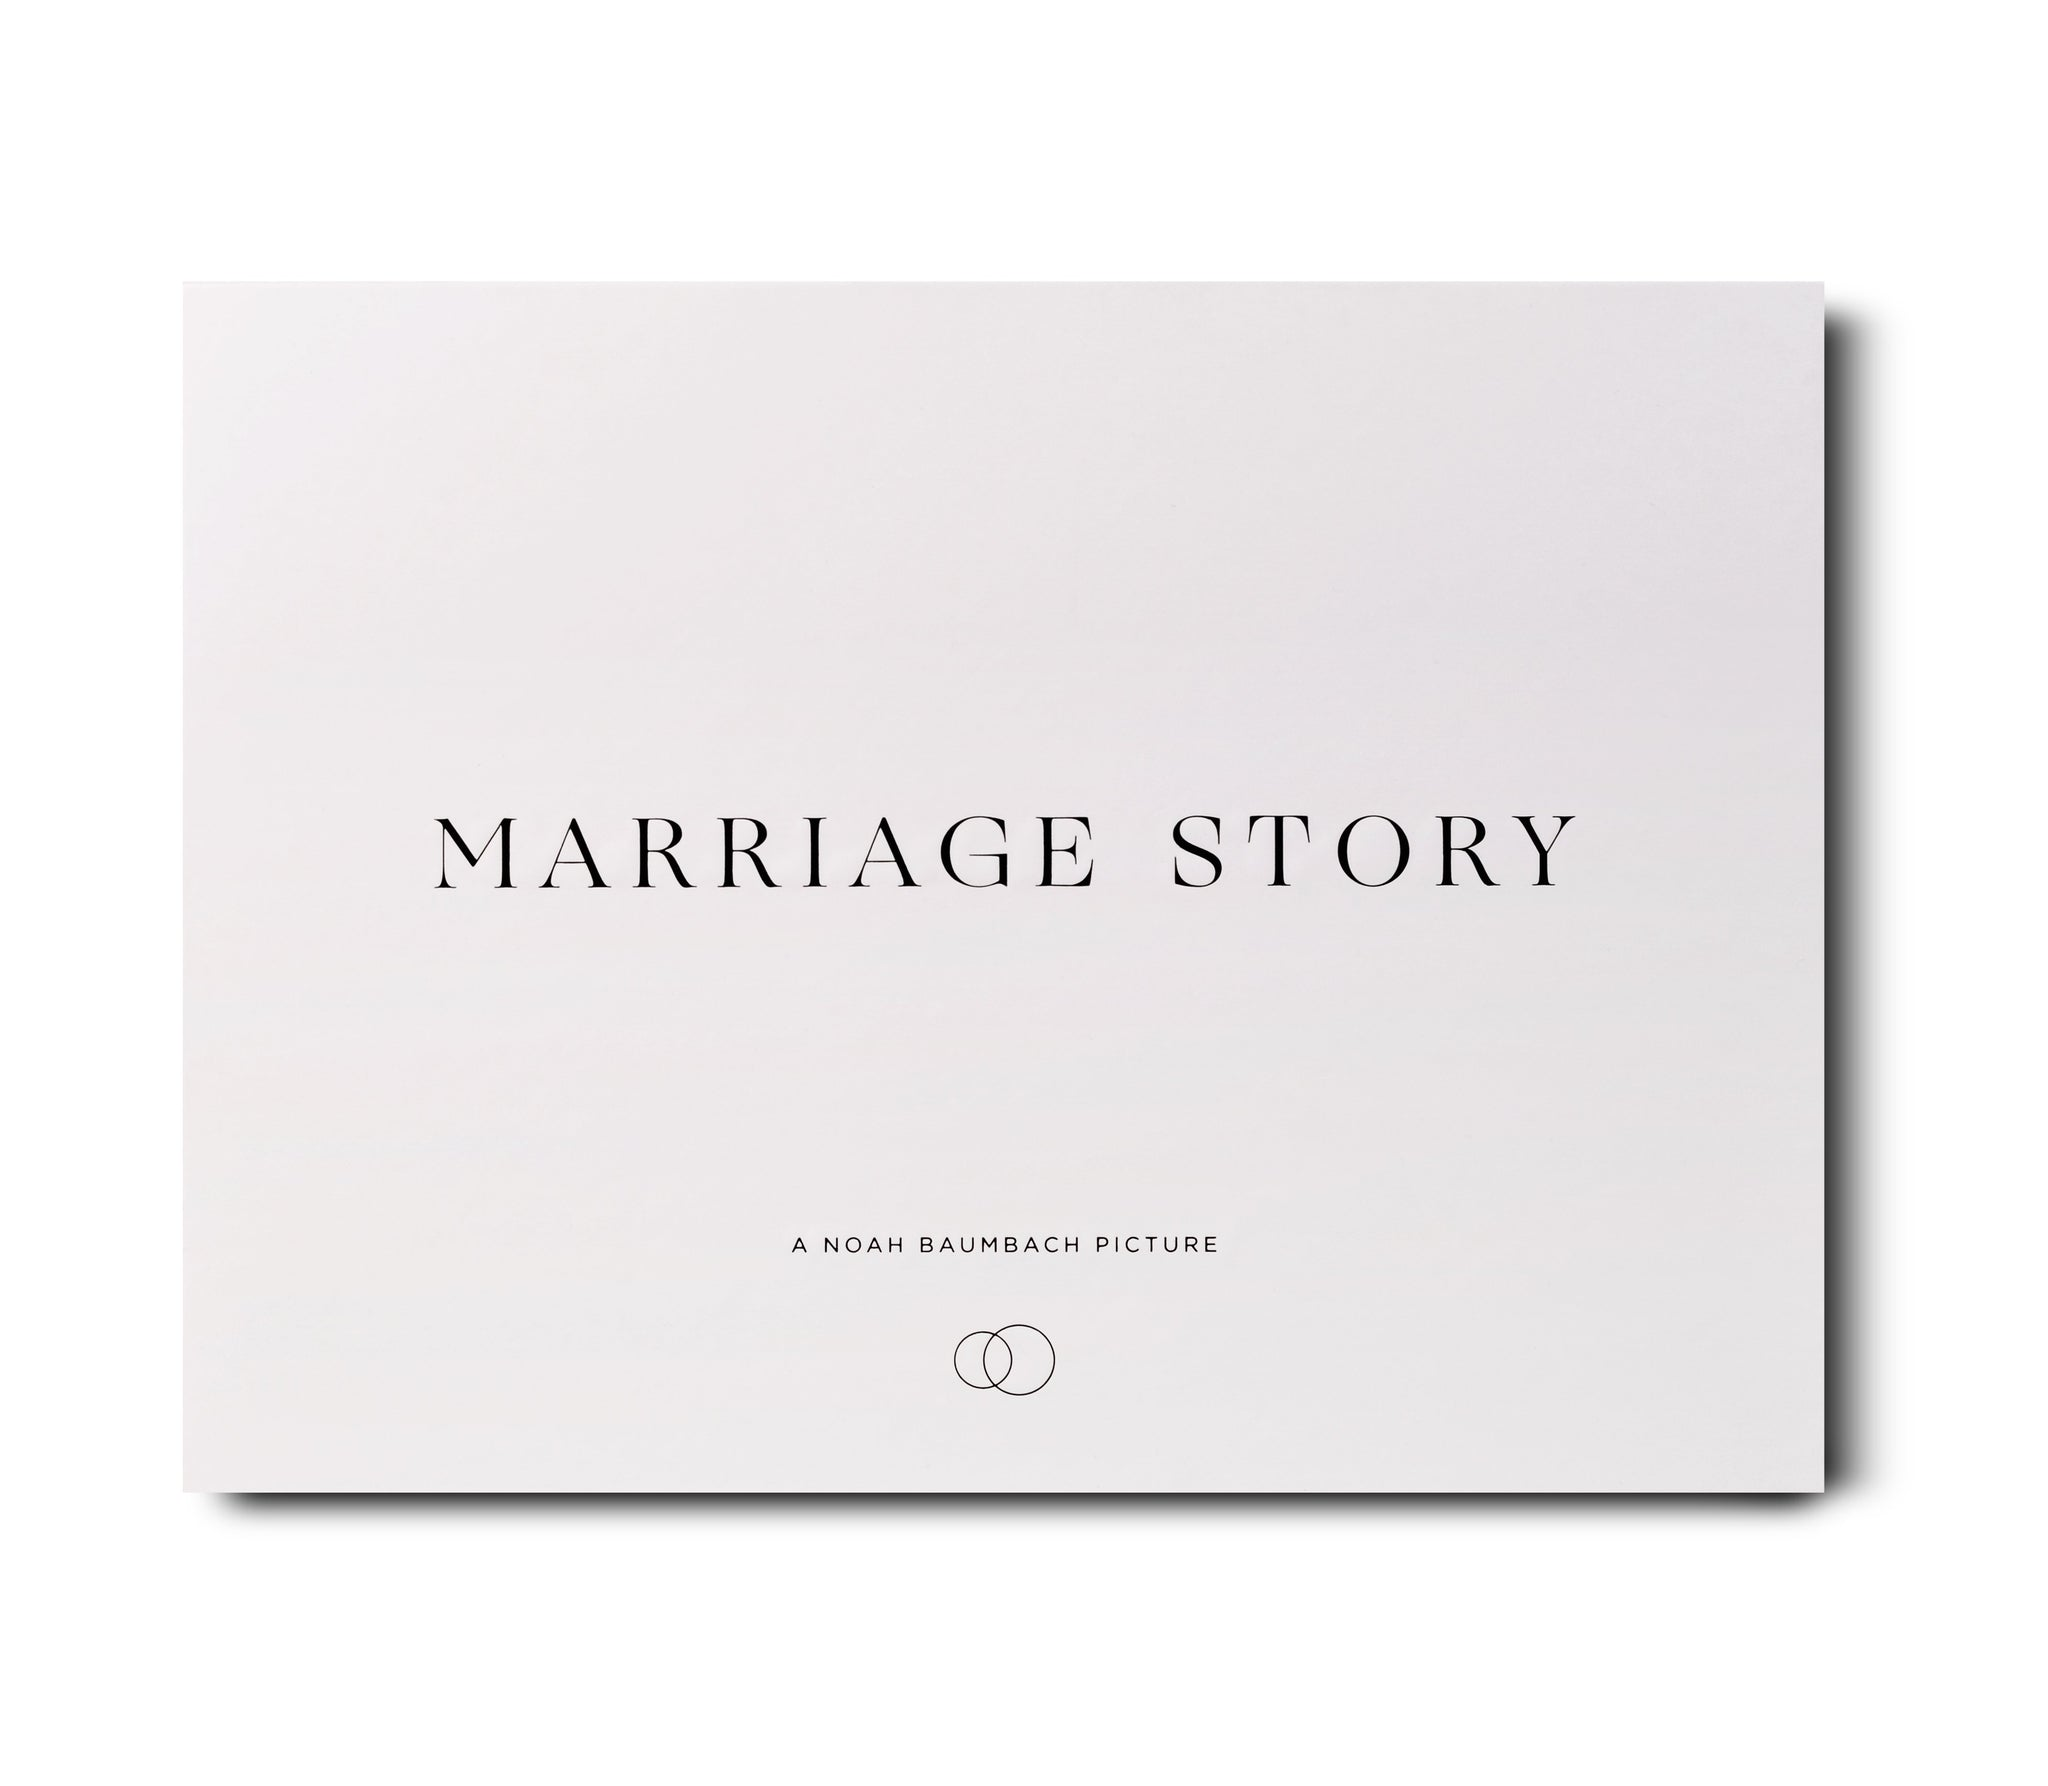 marriage story - photo #22